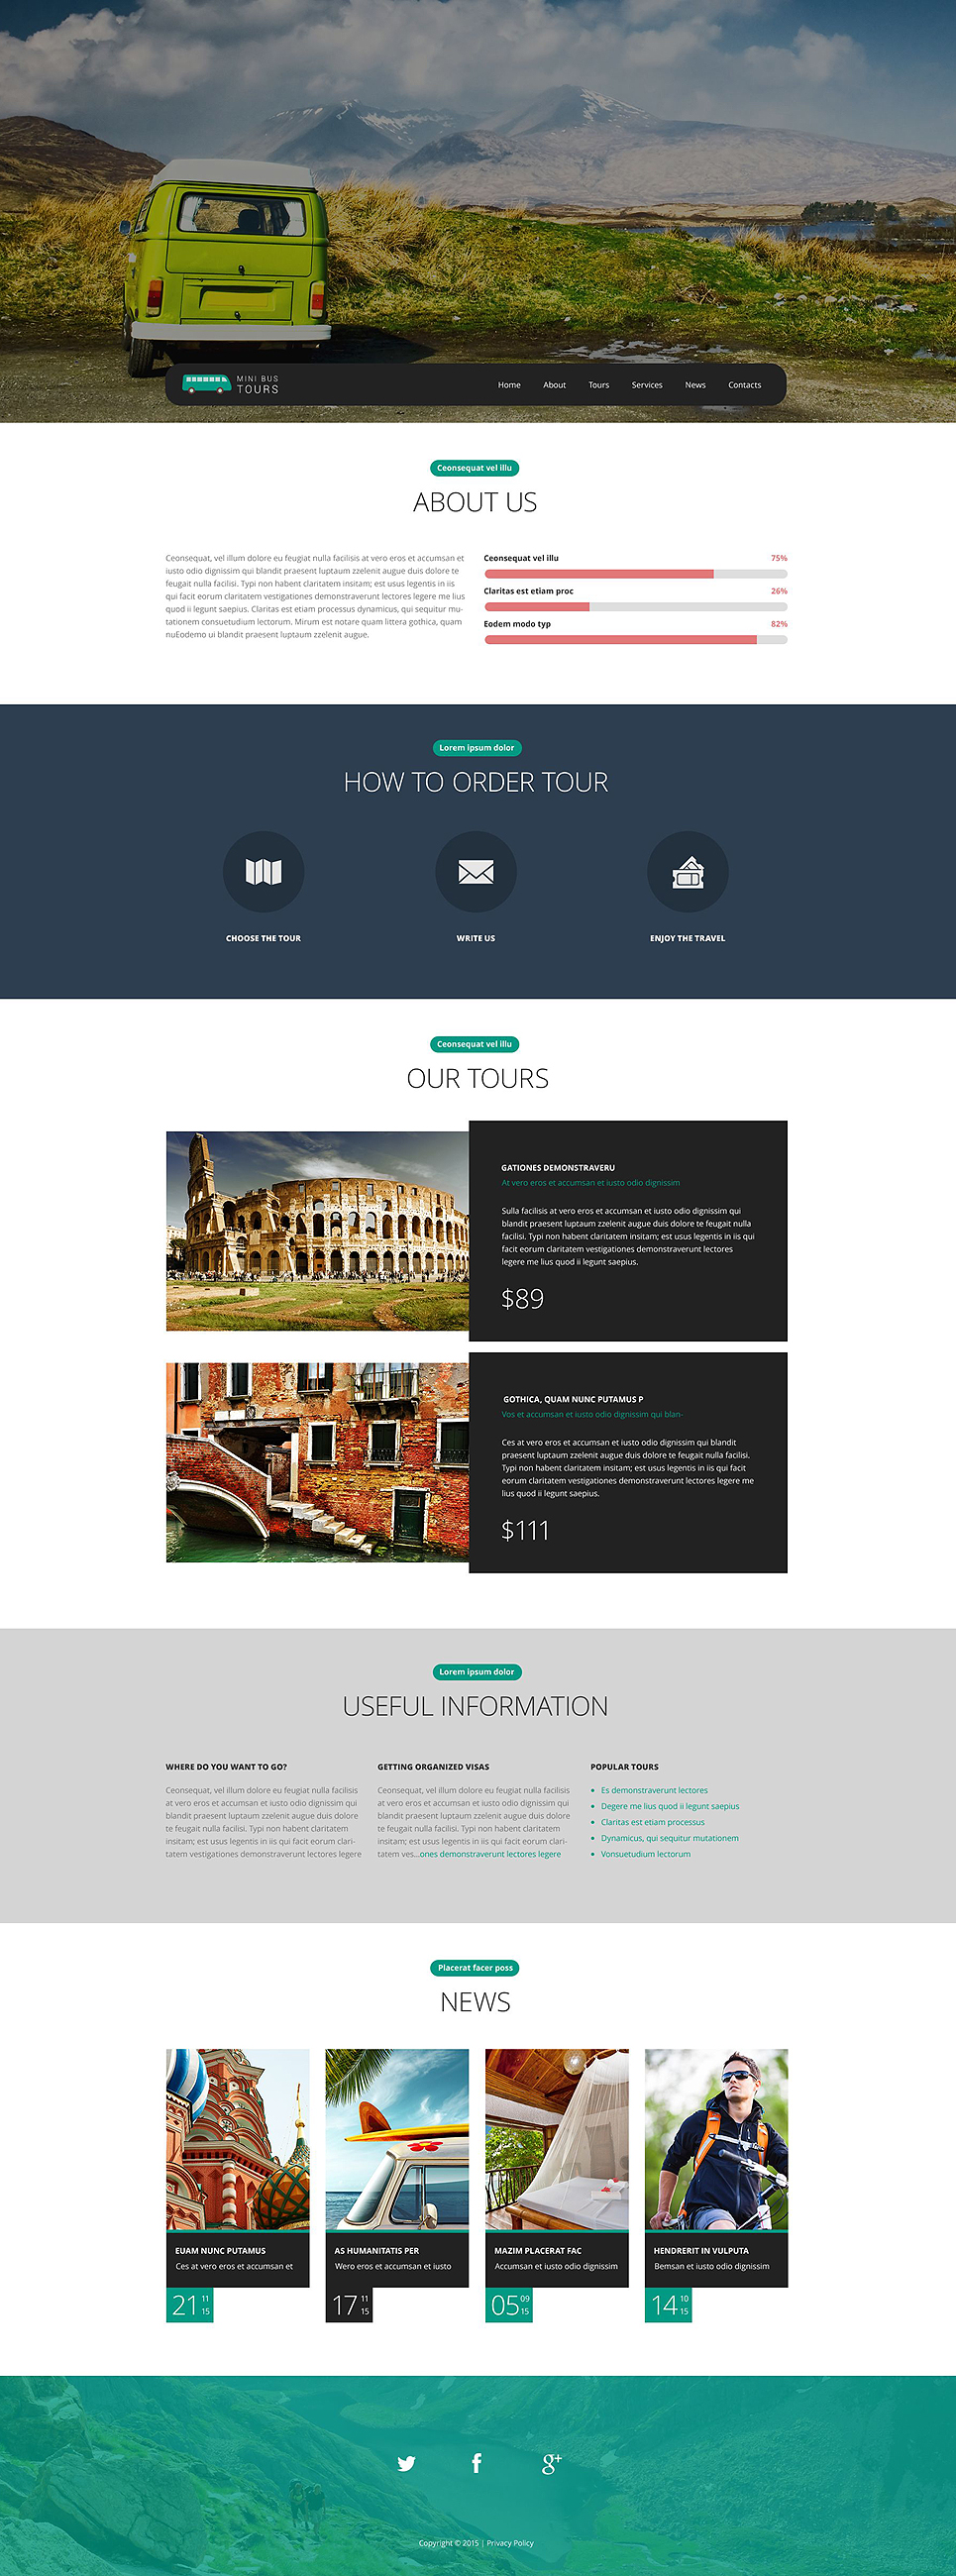 Pro Travel Website template illustration image